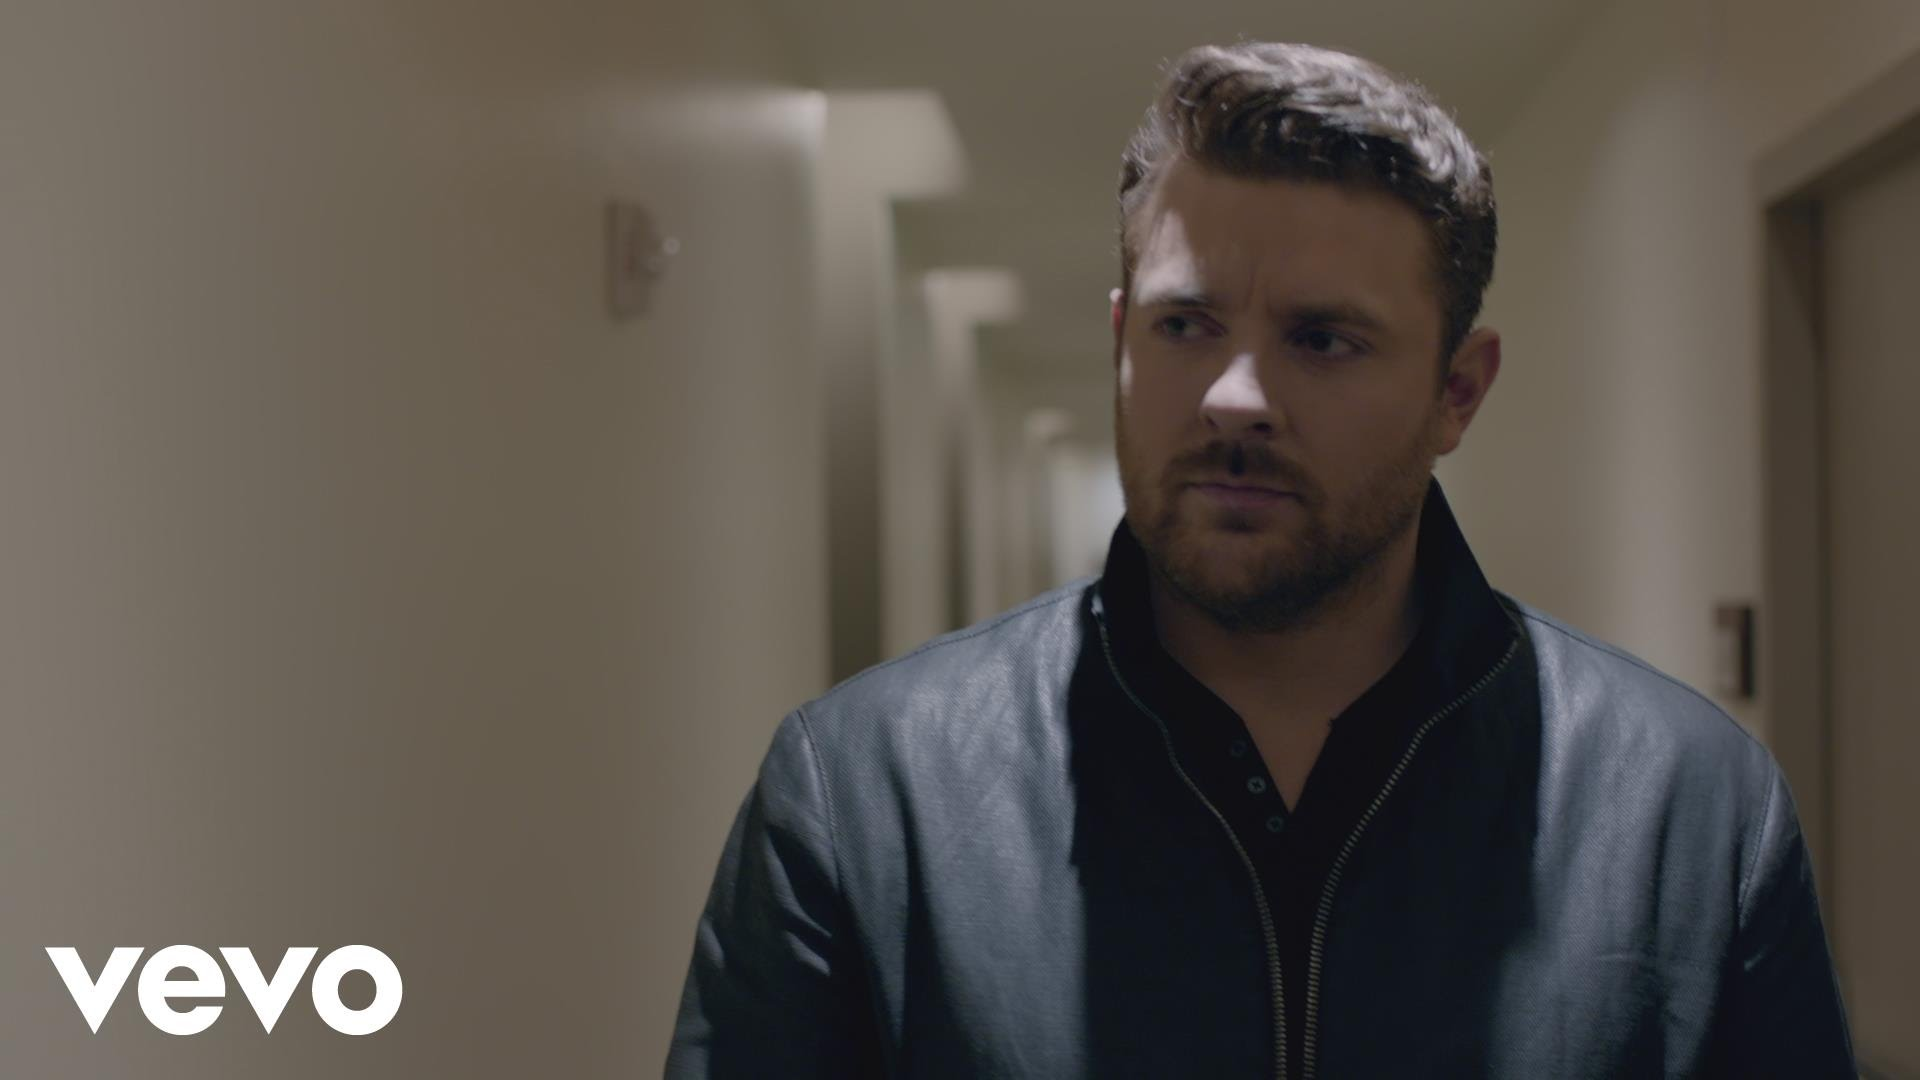 Chris Young adds 12 new dates to the 2018 Losing Sleep World Tour